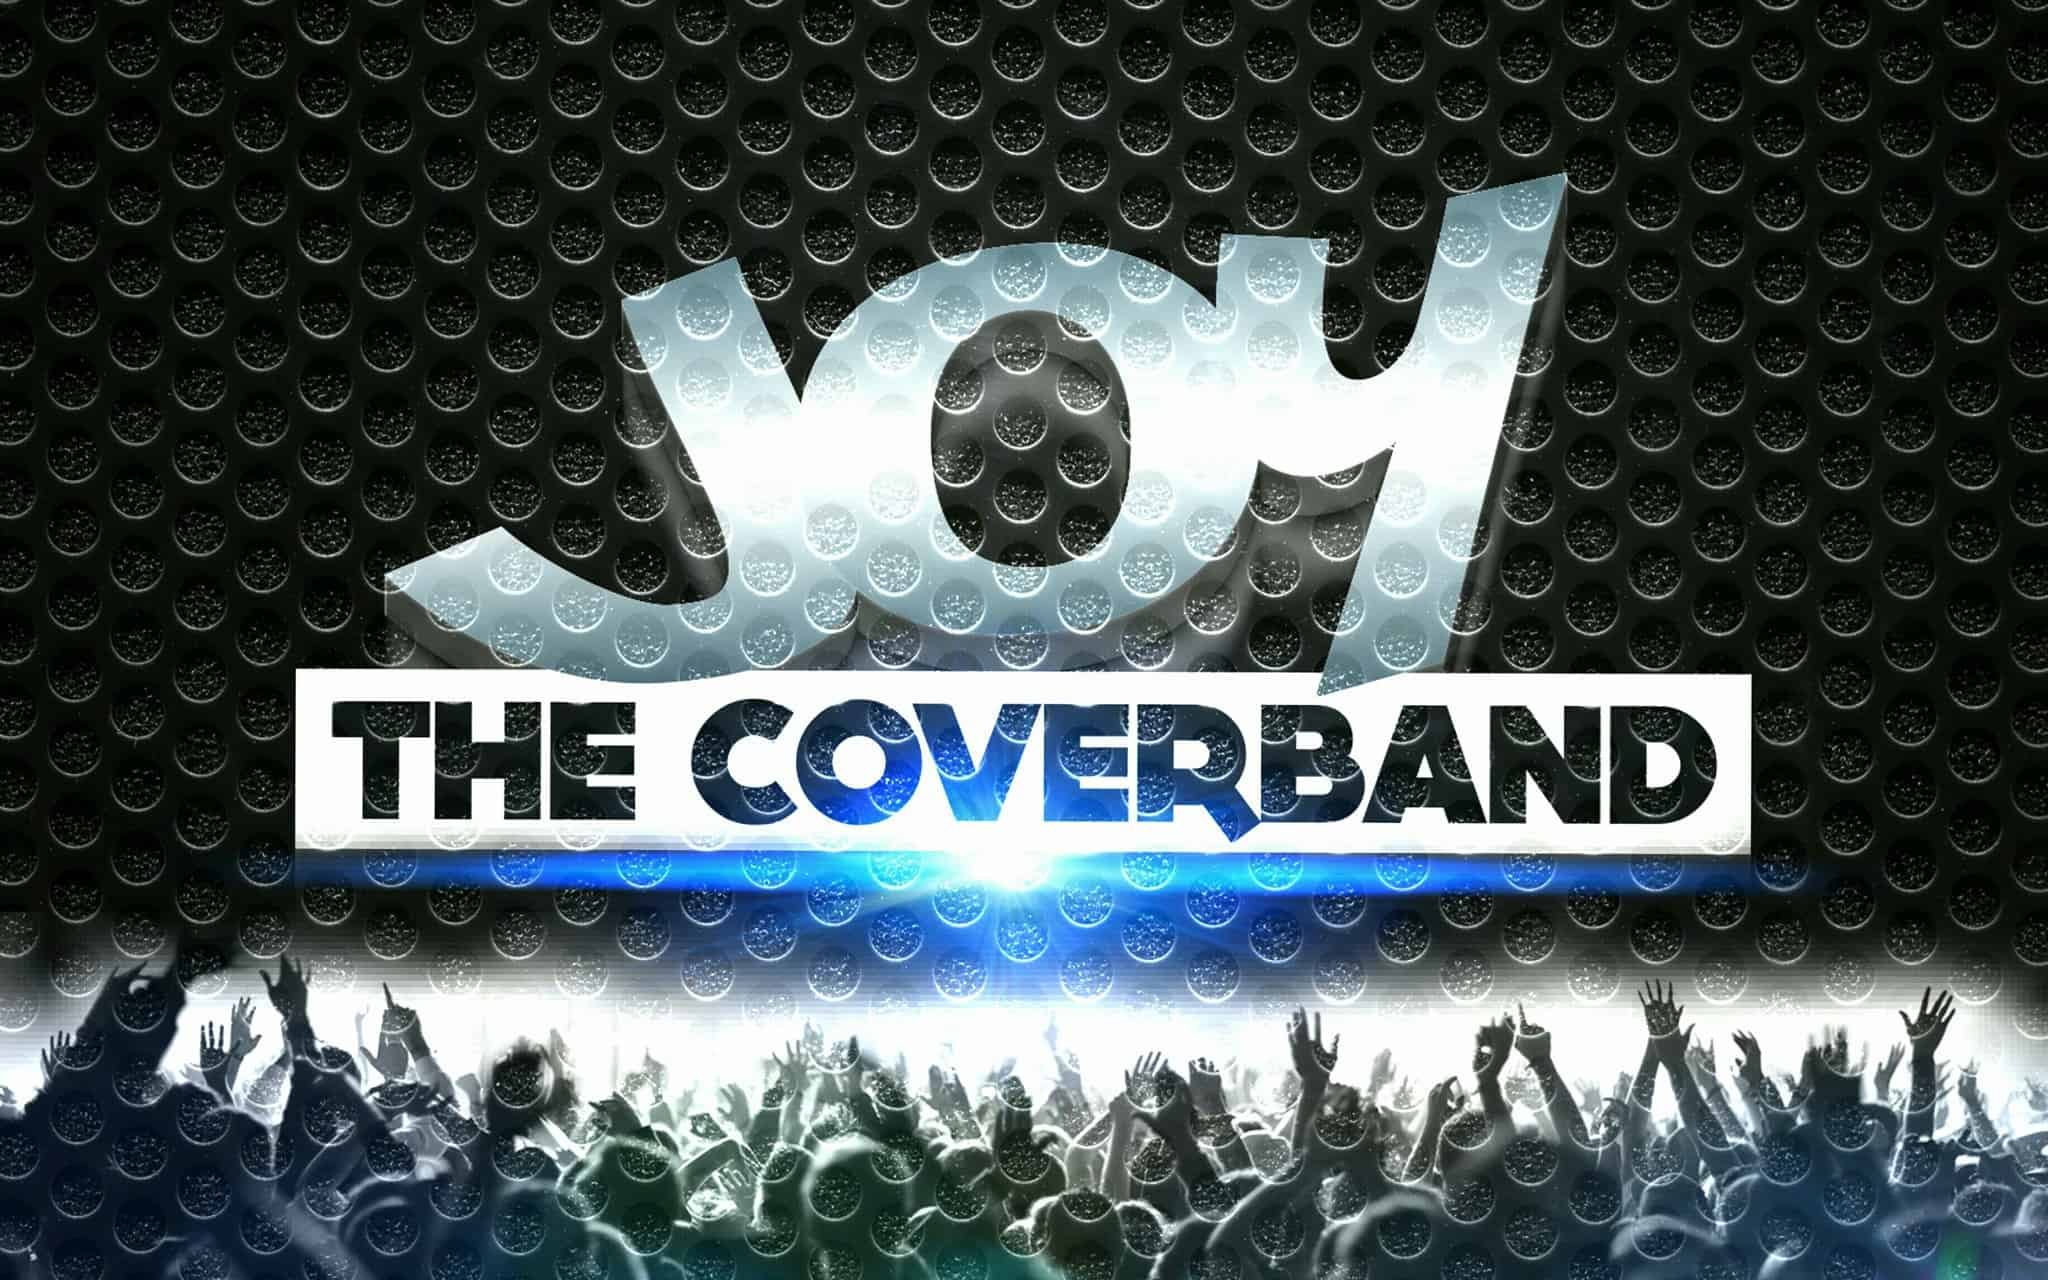 JOY- The Coverband